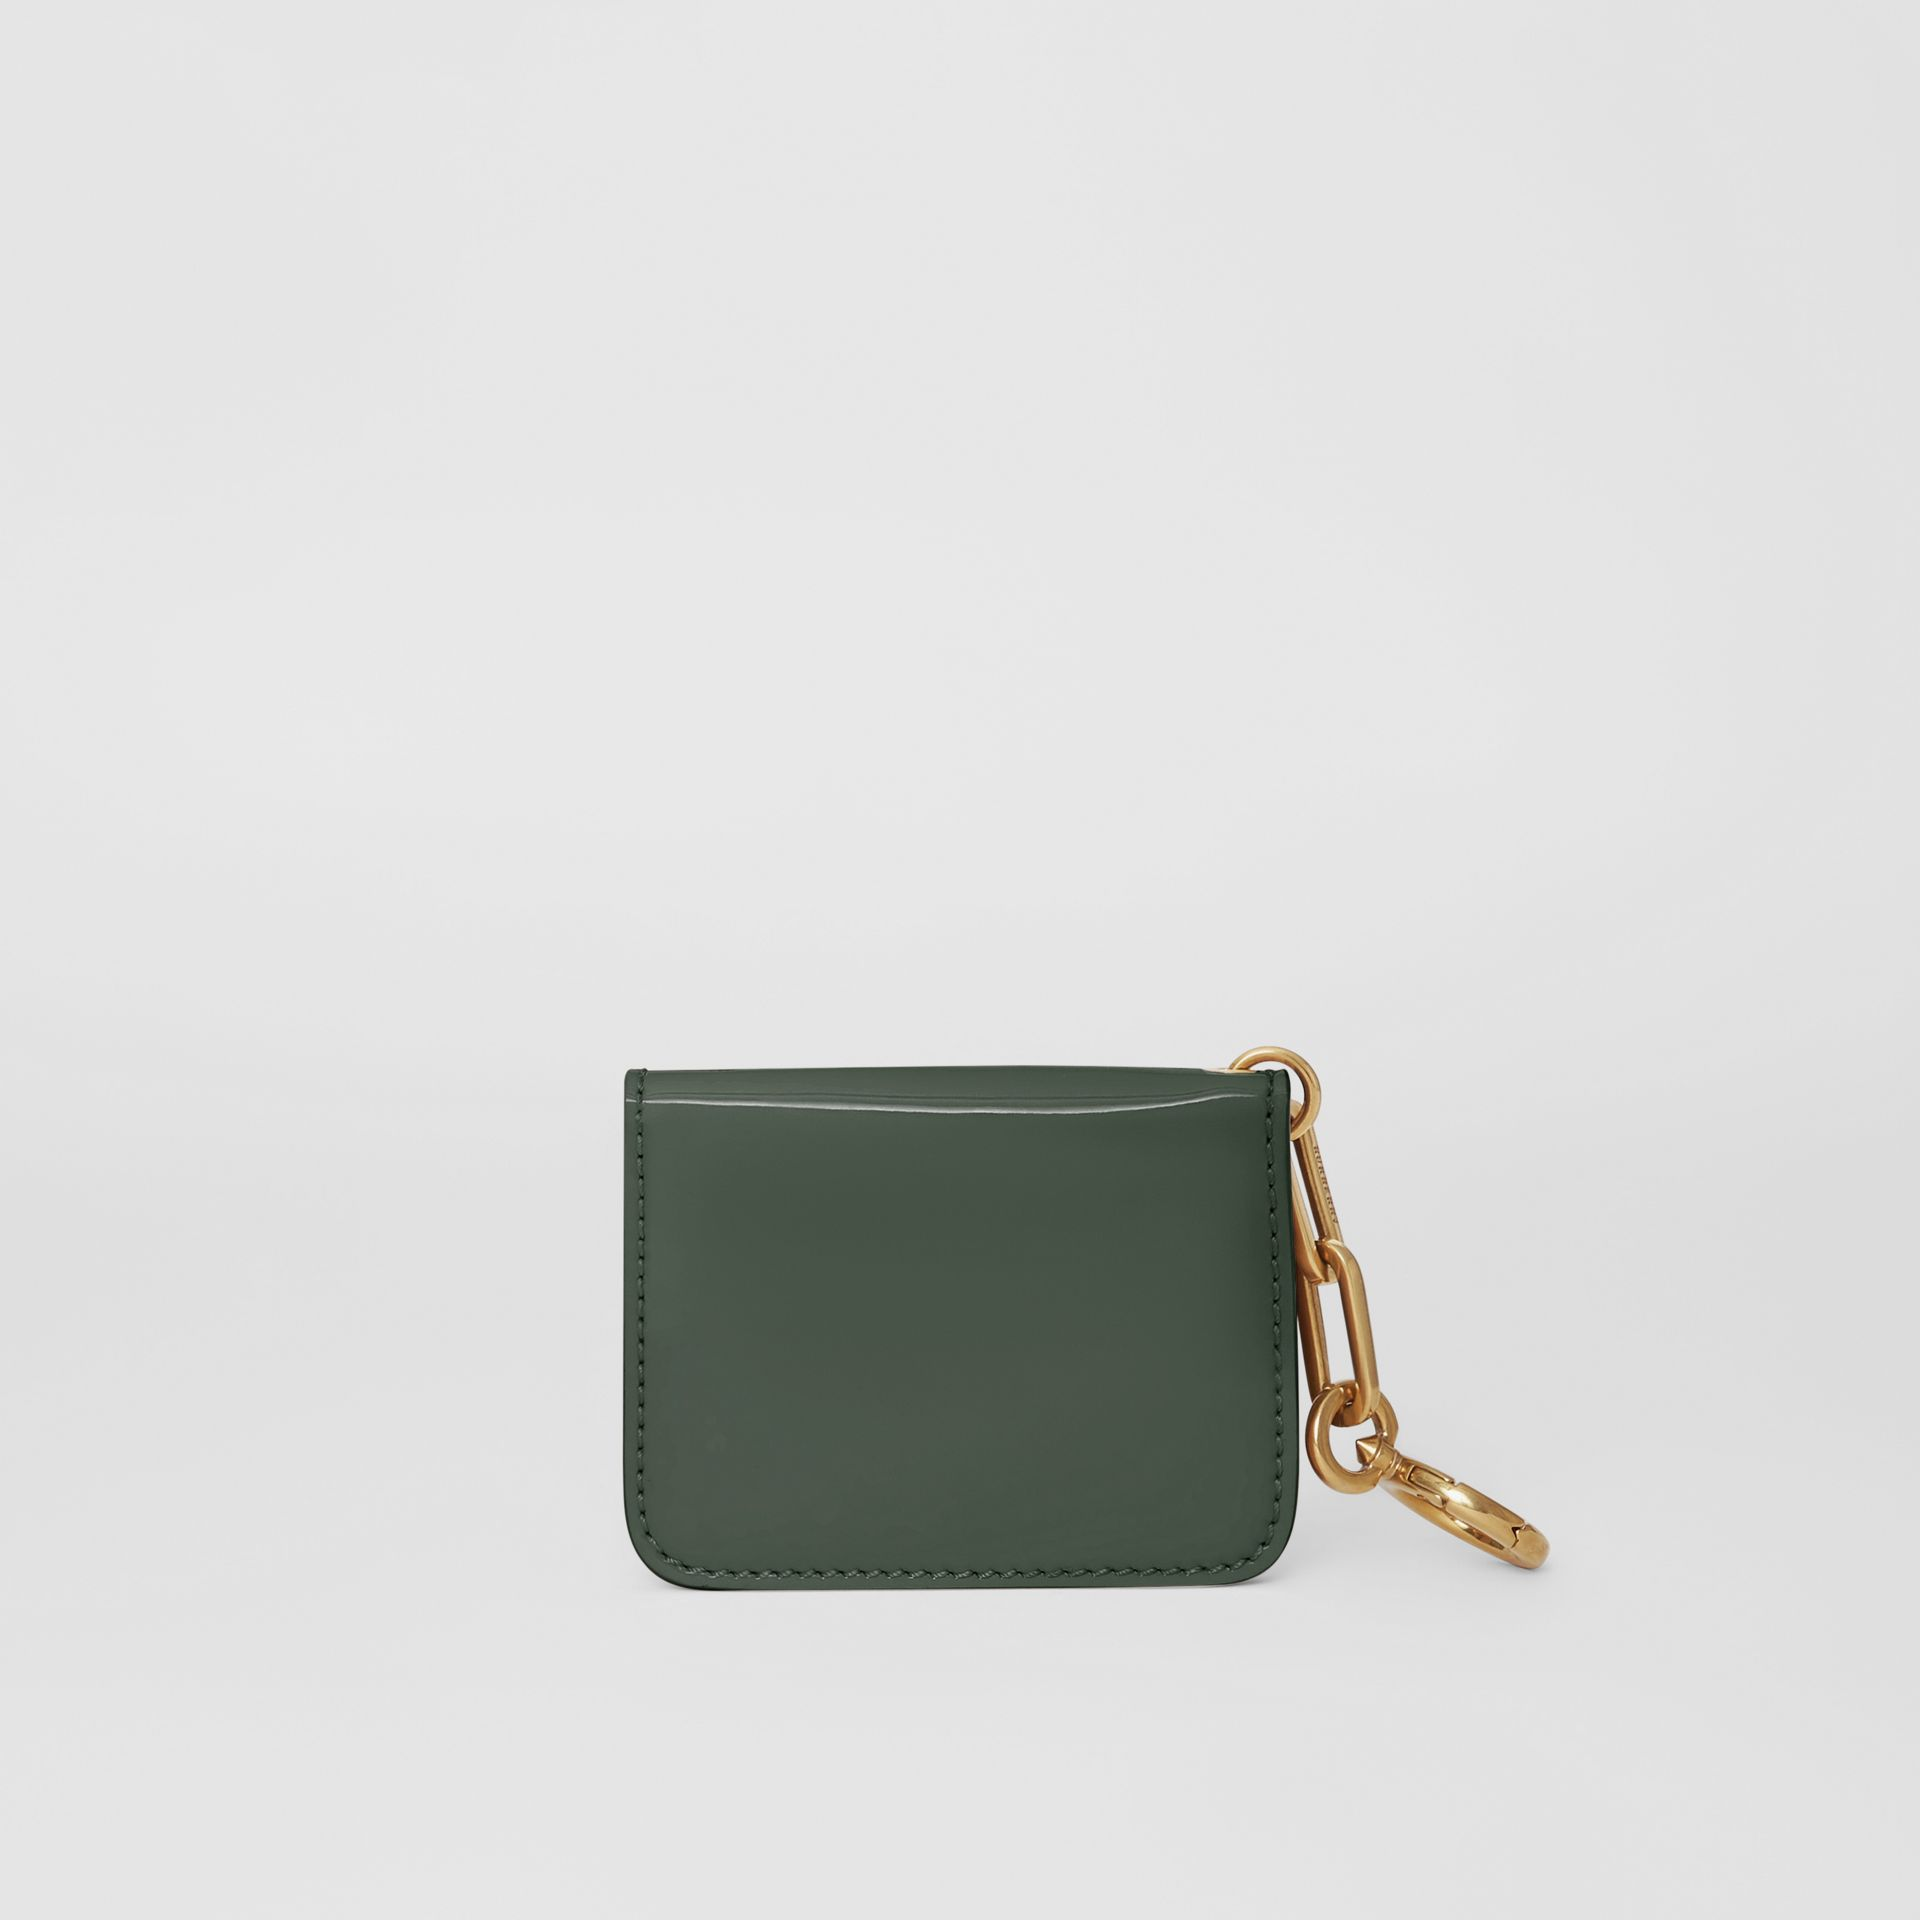 Link Detail Patent Leather ID Card Case Charm in Dark Forest Green - Women | Burberry United States - gallery image 2